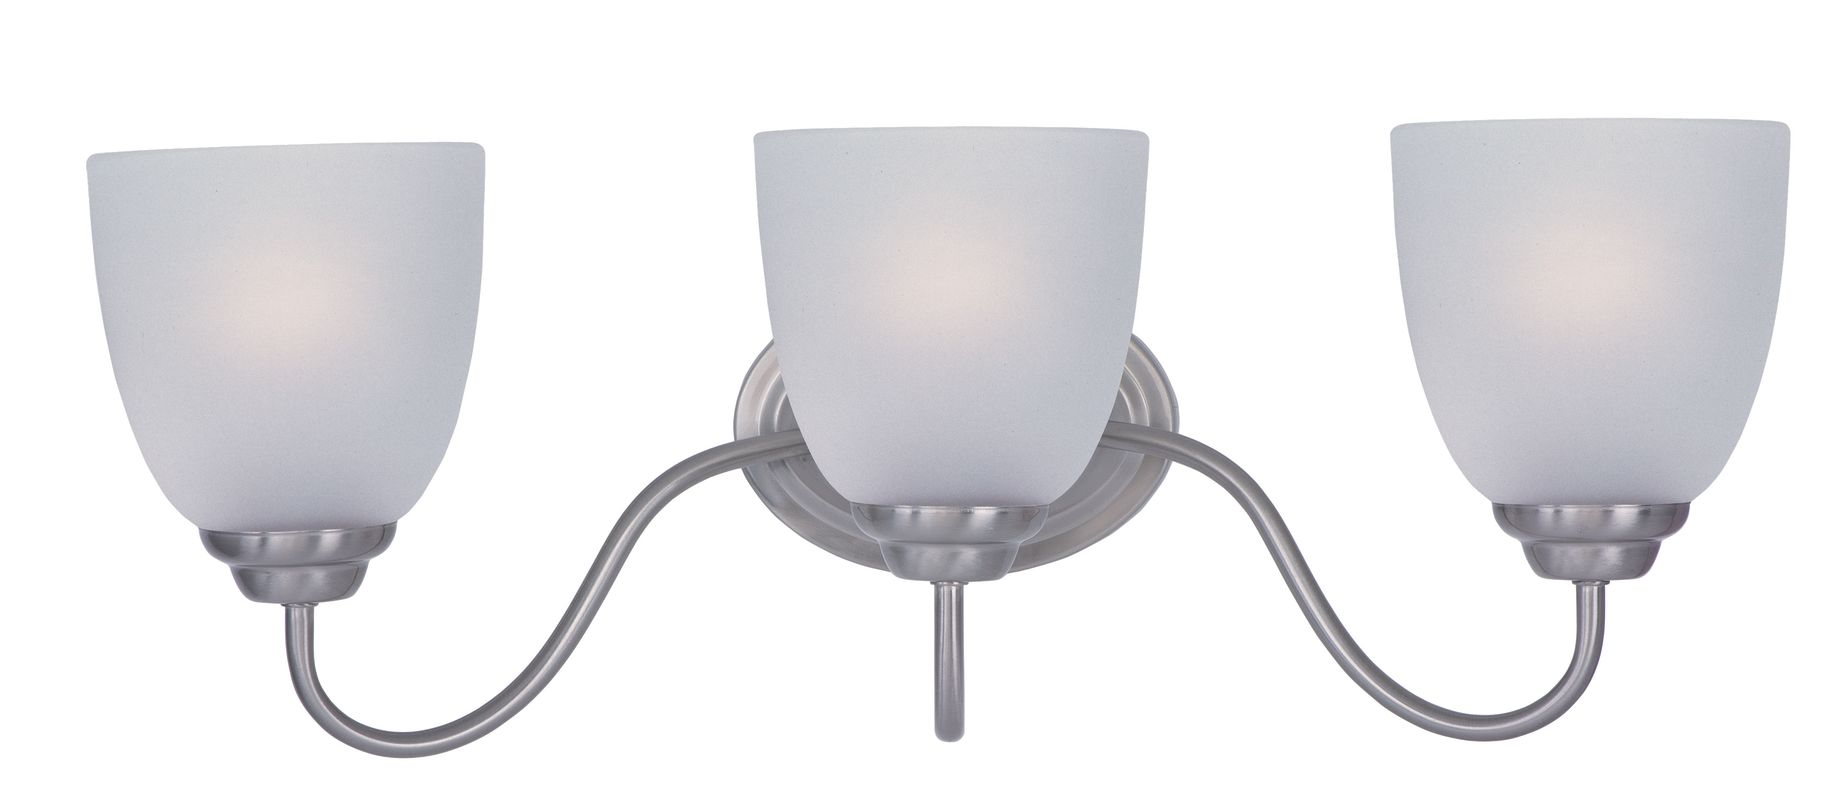 "Maxim 10073 3 Light 21.5"" Wide Bathroom Fixture from the Stefan"